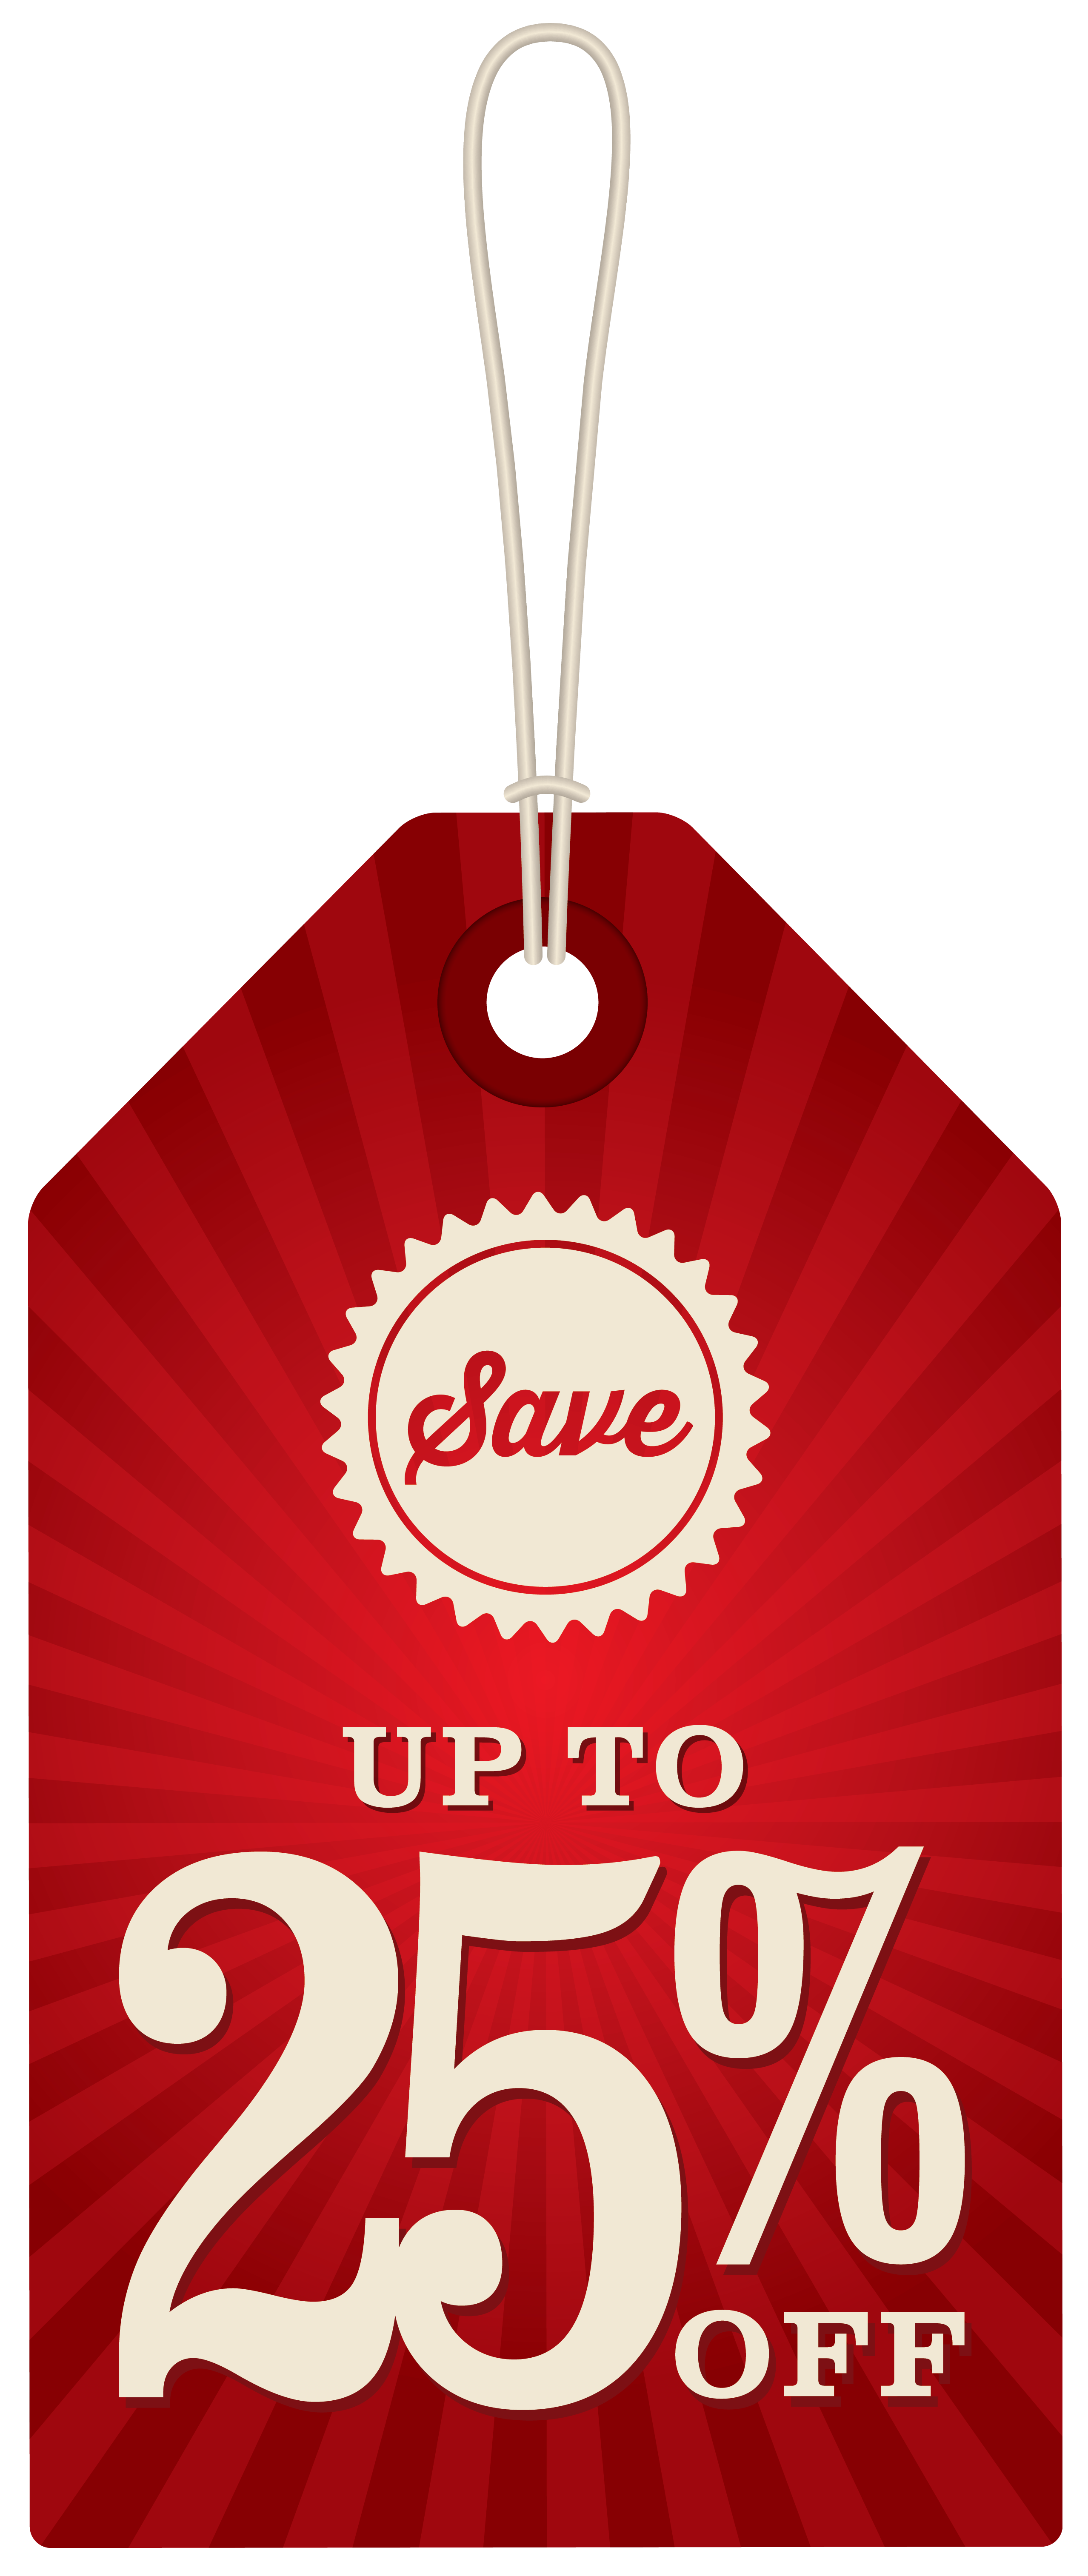 Save Up To 25% Off Label PNG Clipart Image.